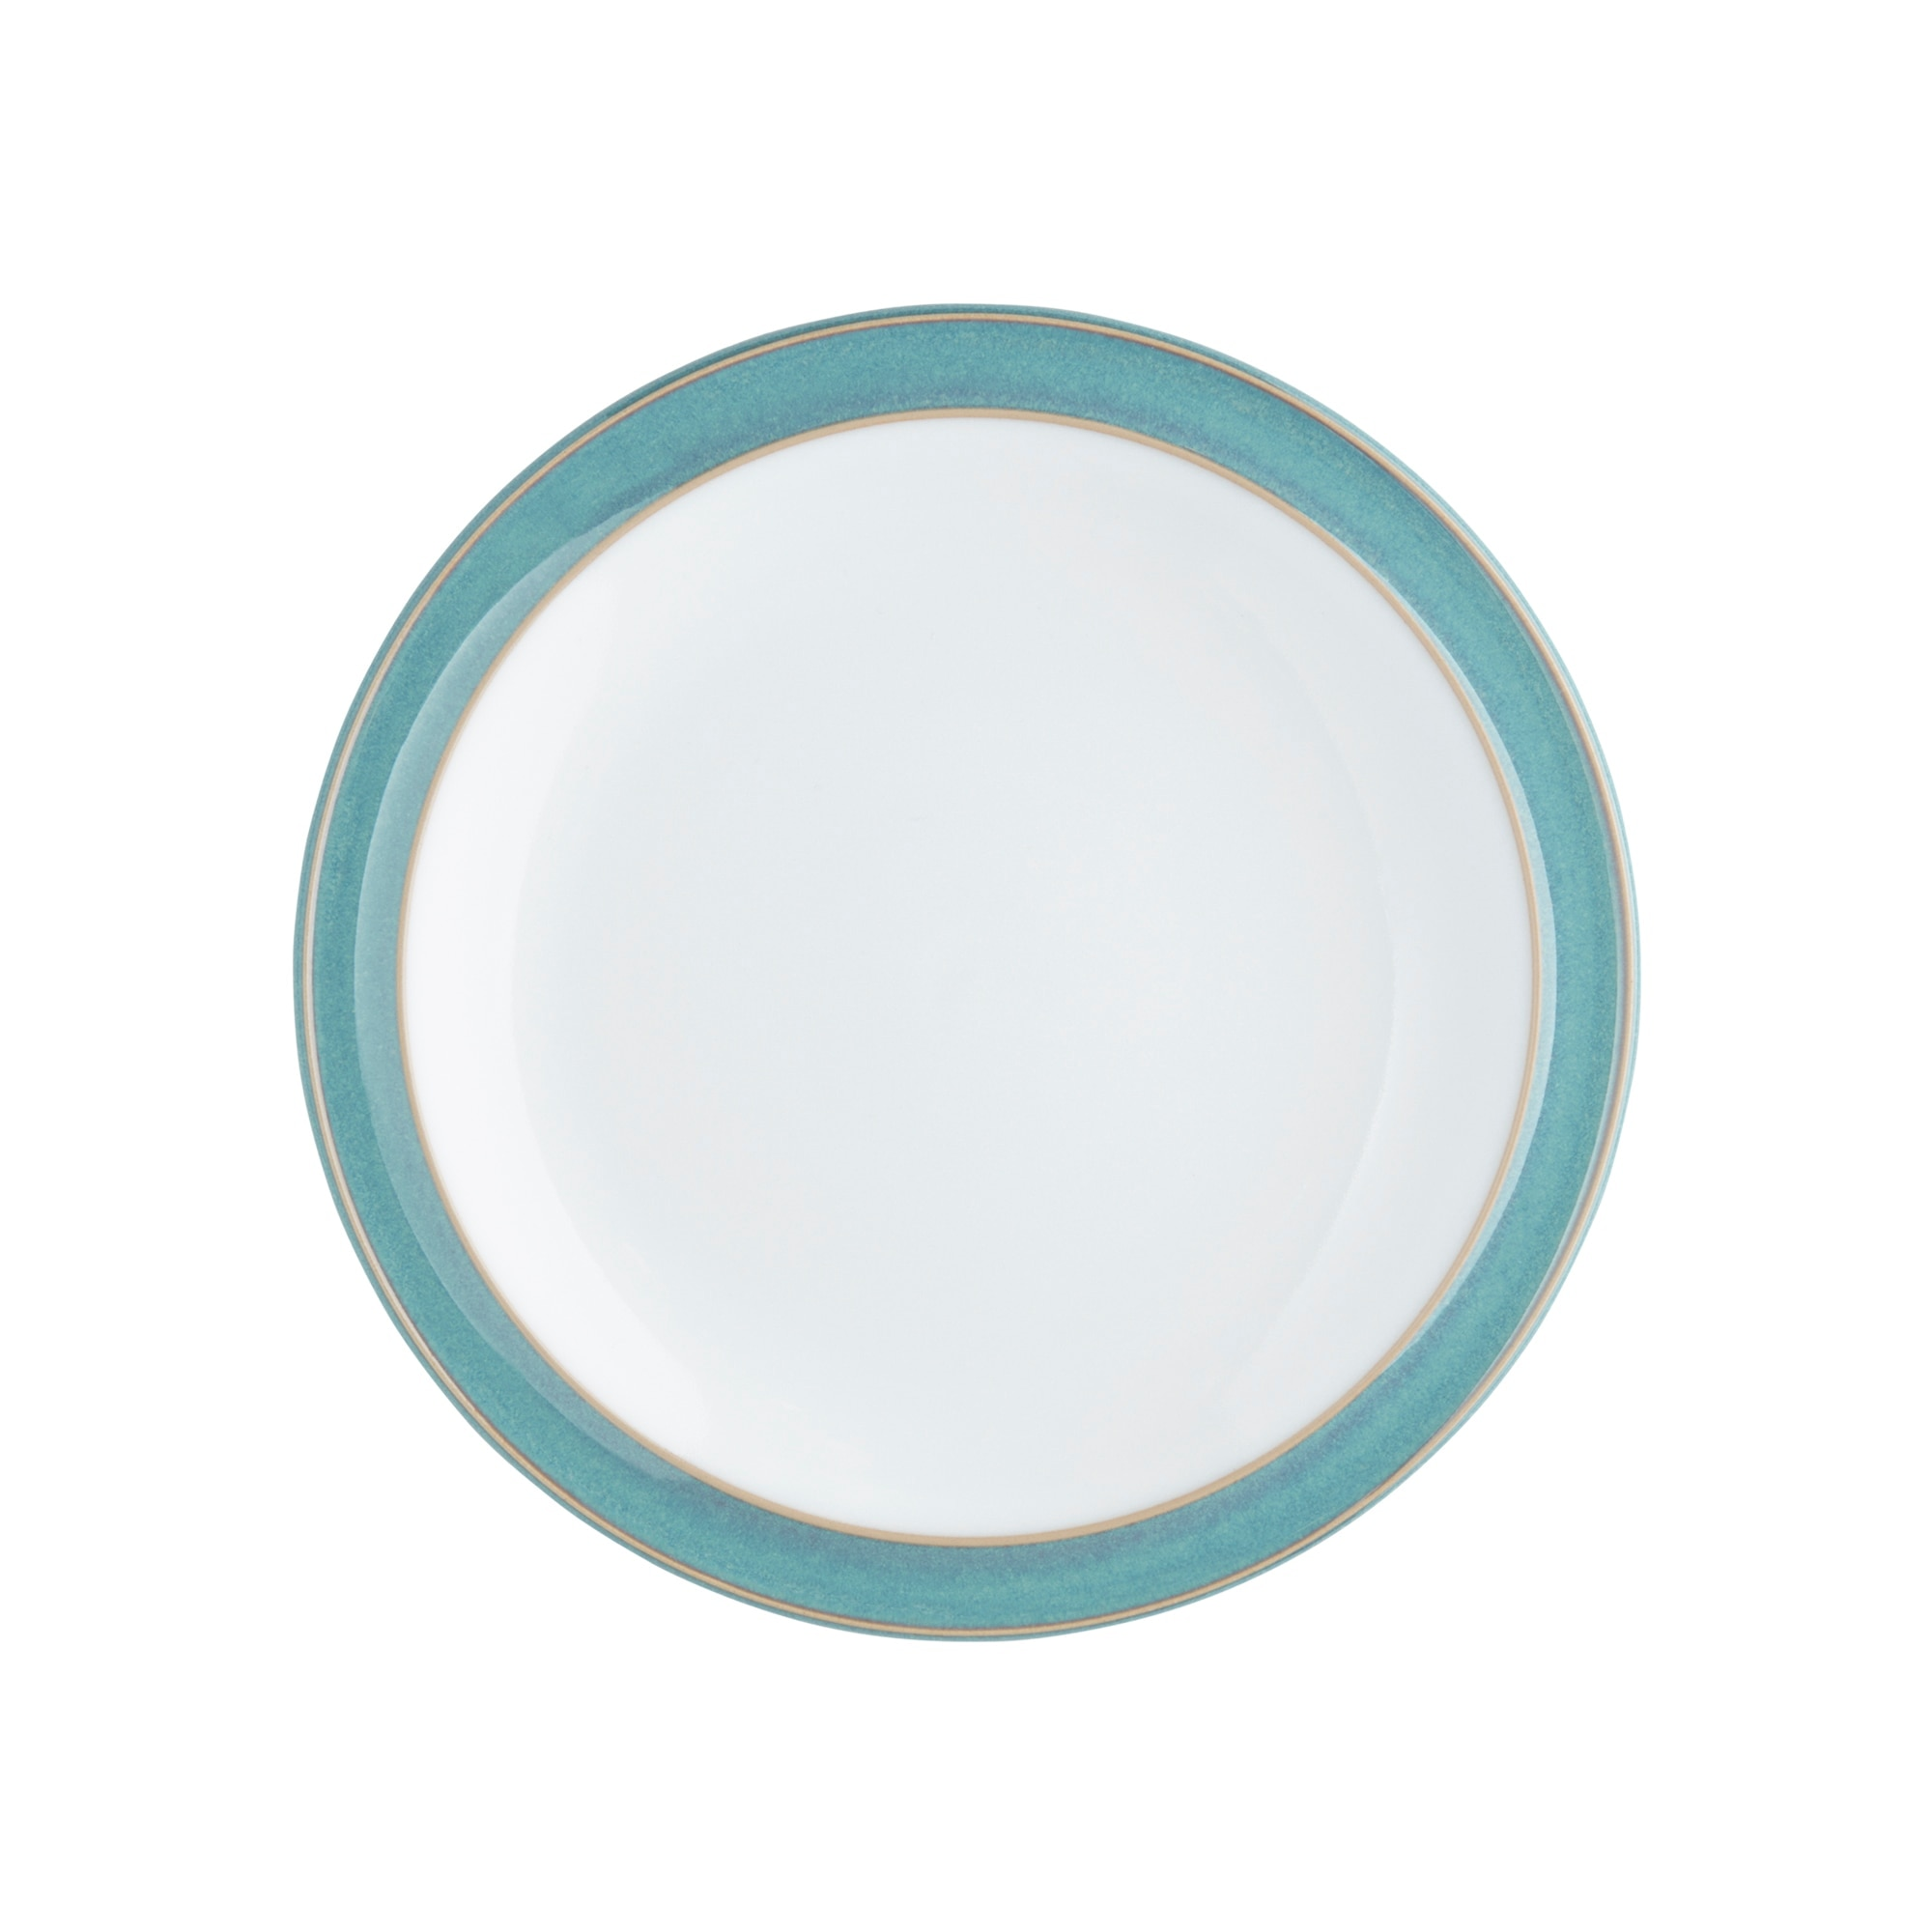 Compare prices for Denby Azure Small Plate